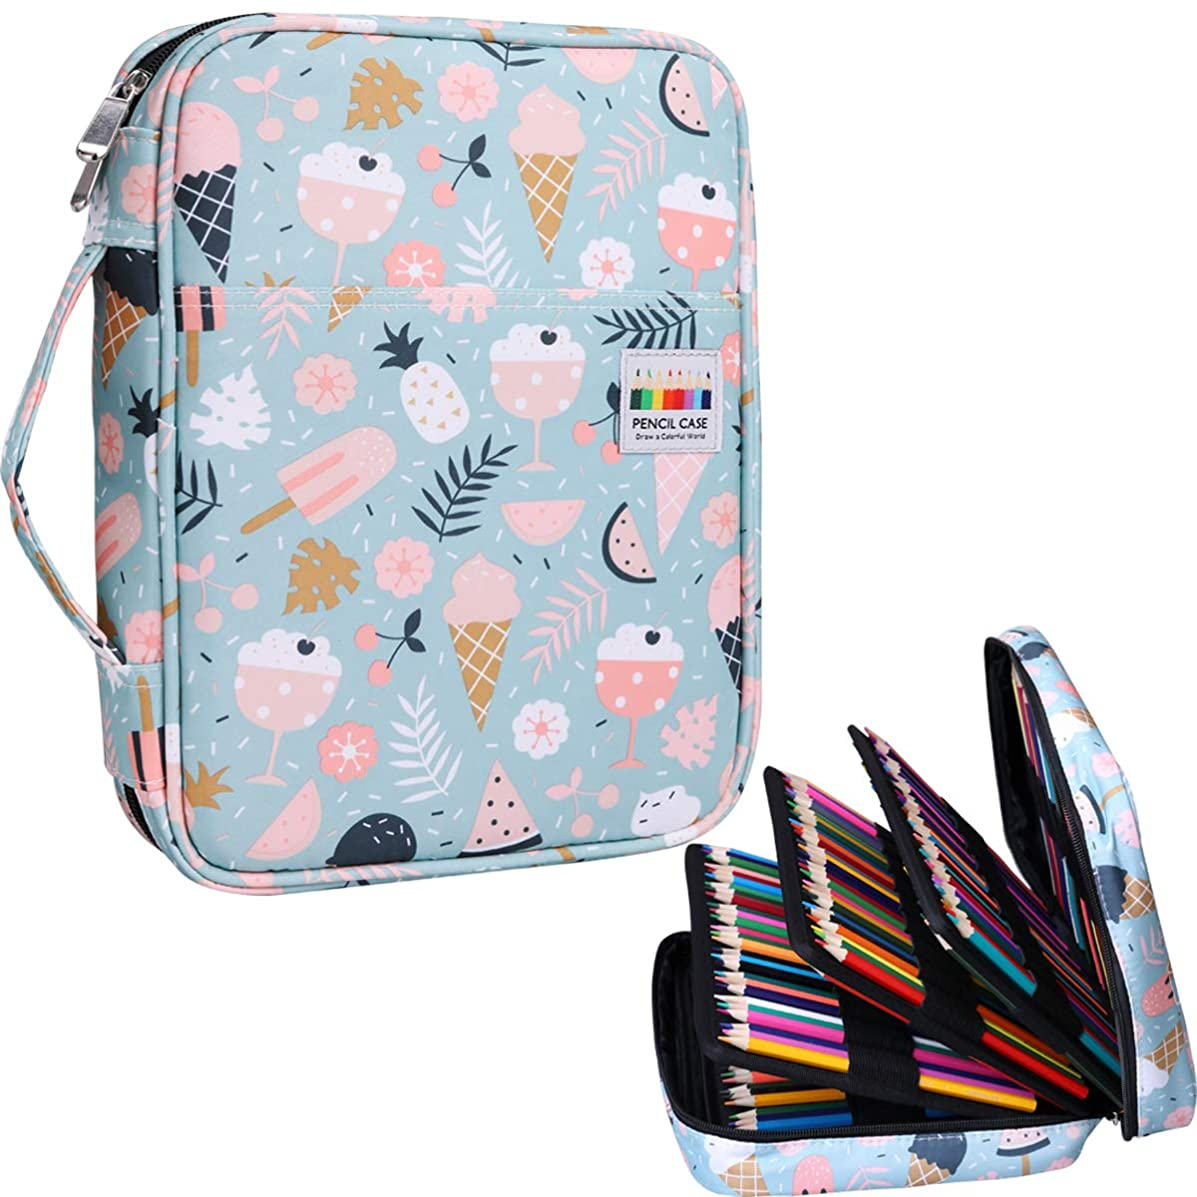 220 Colored Pencil Bags Multi-Layer Pencil Case Large Capacity Markers Pen Organizer Watercolor Pen Holder for Students Painter Writers Professional for Storing Various Tool (Ice Cream)